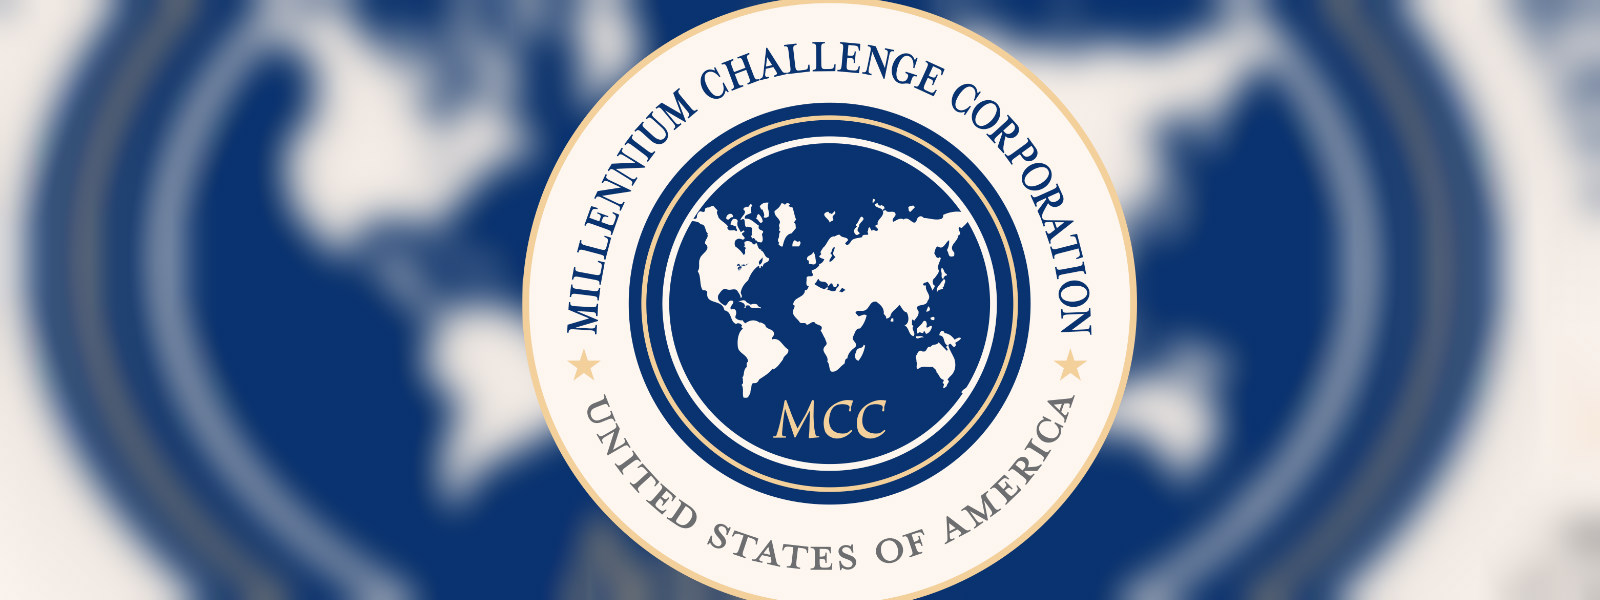 Claims and counter claims bounce off MCC agreement